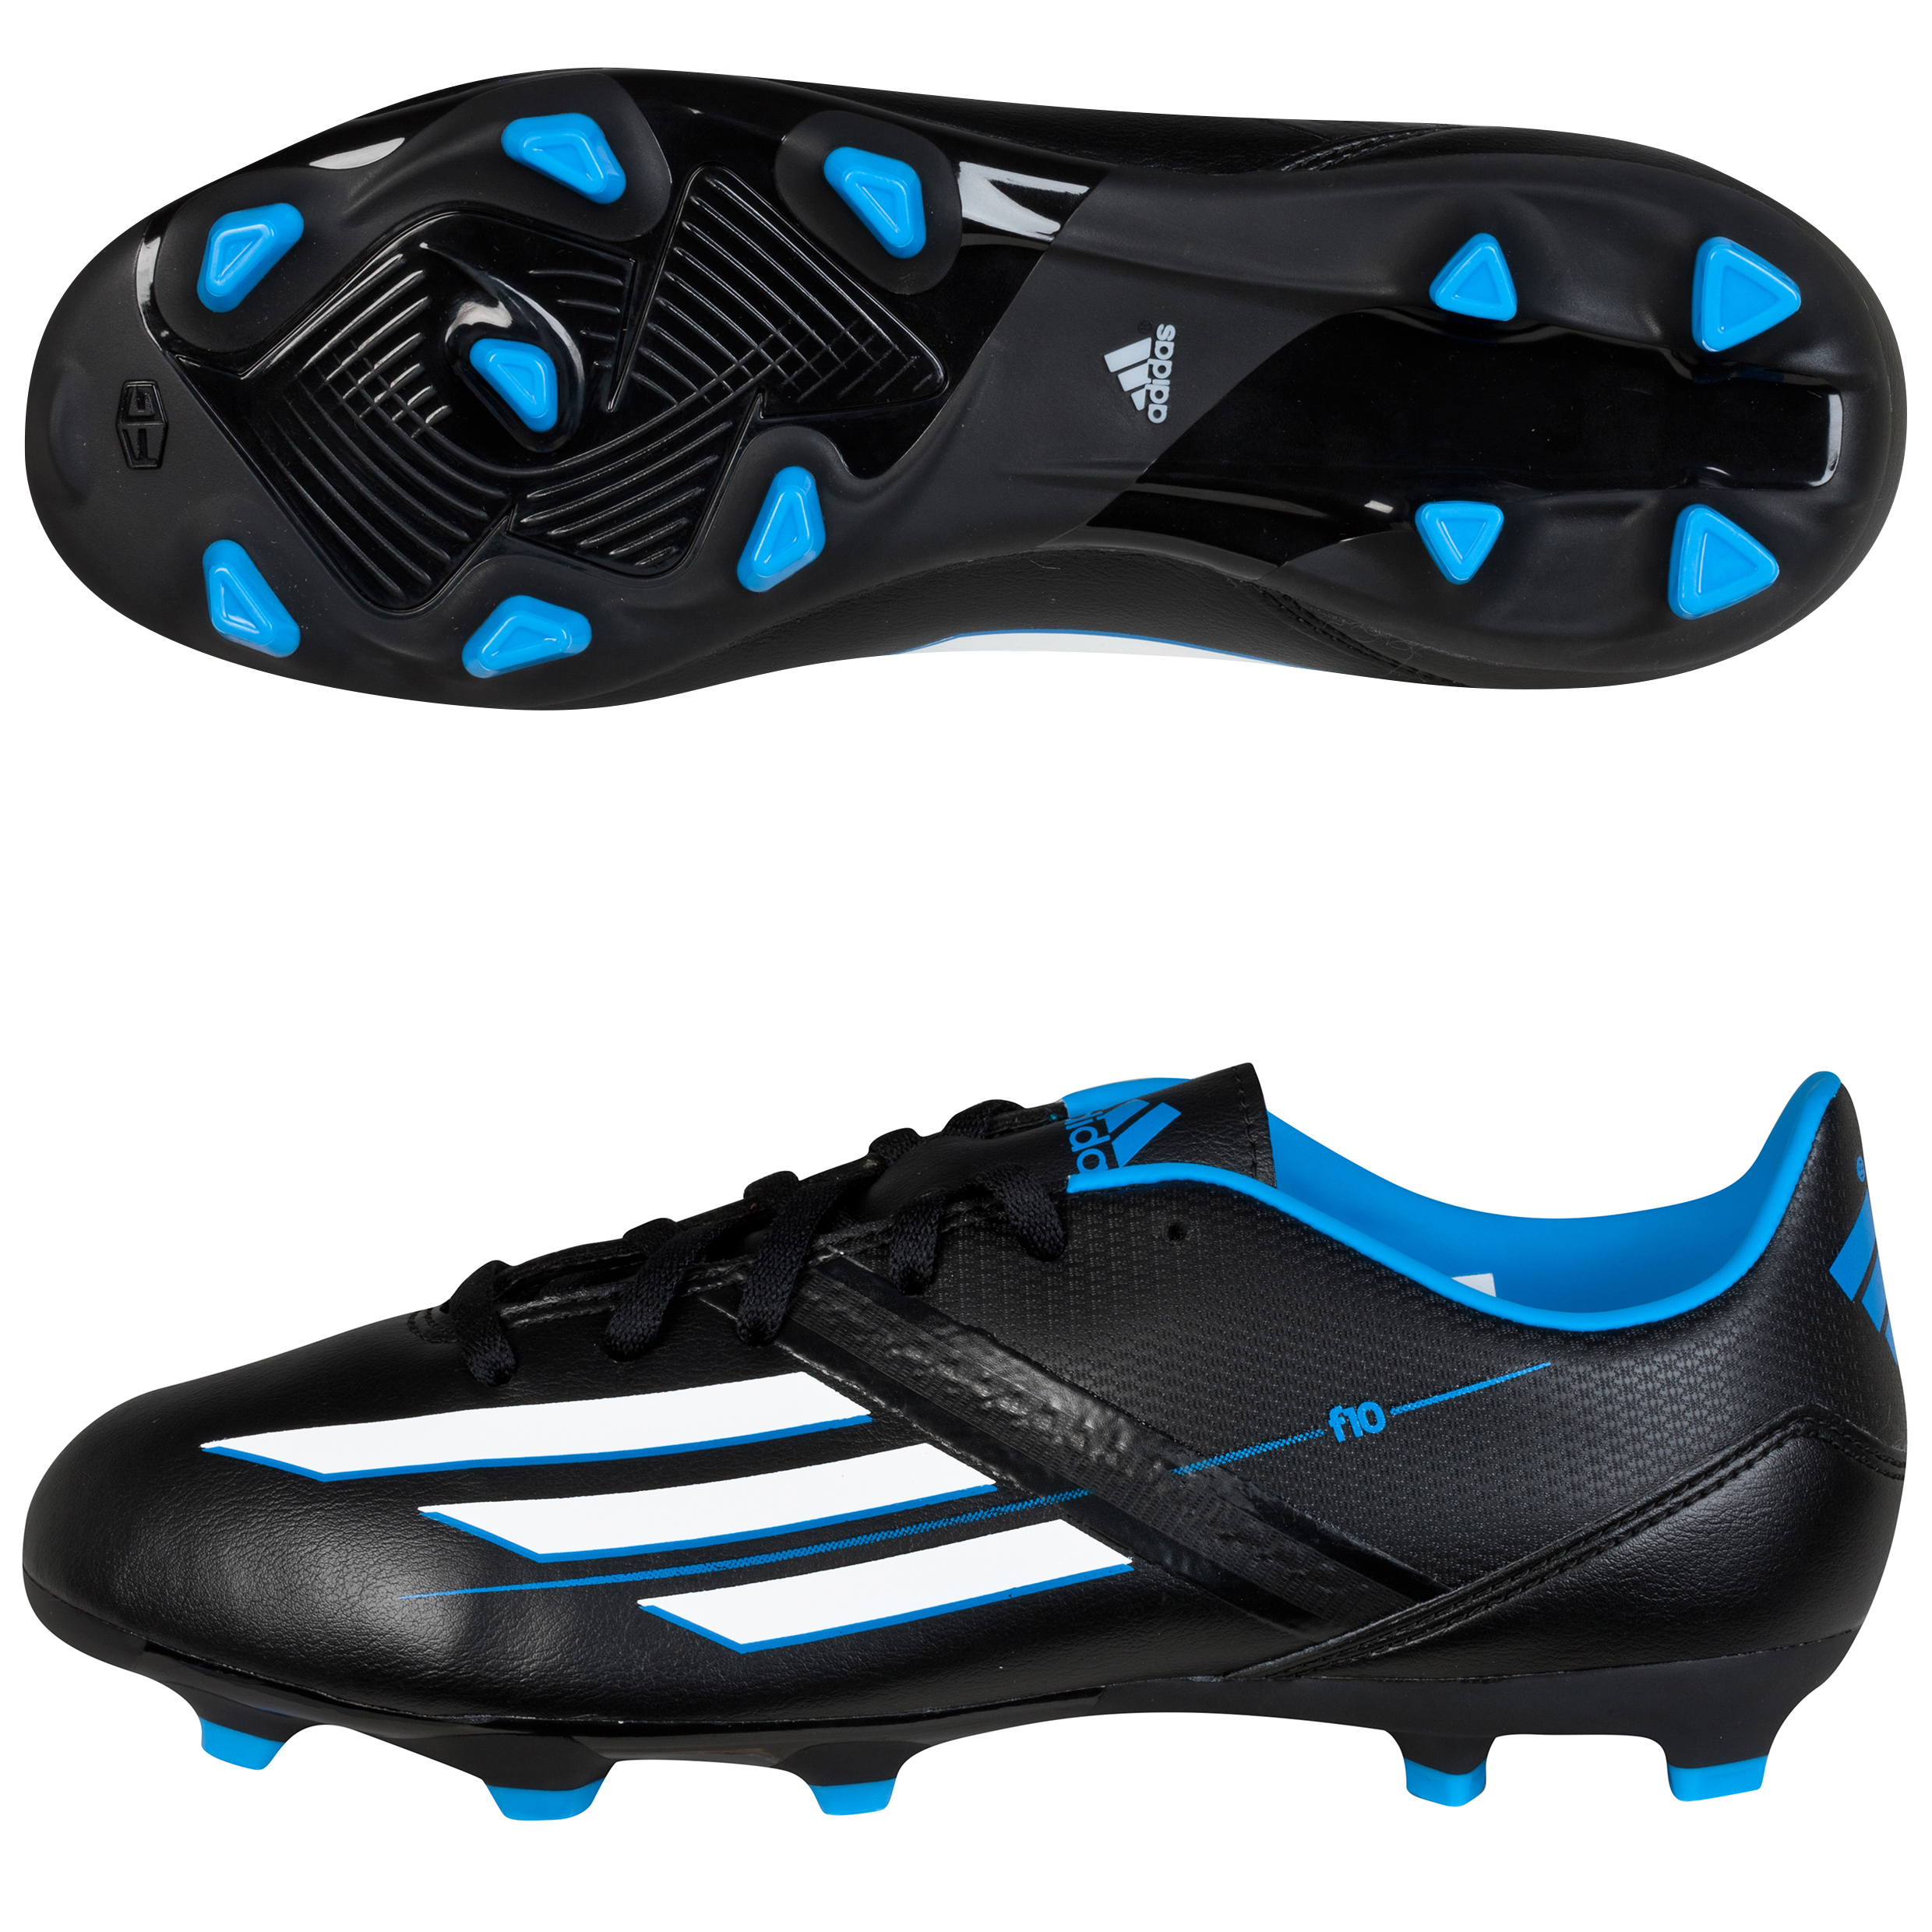 Adidas F10 TRX Firm Ground Football Boots - Kids Black